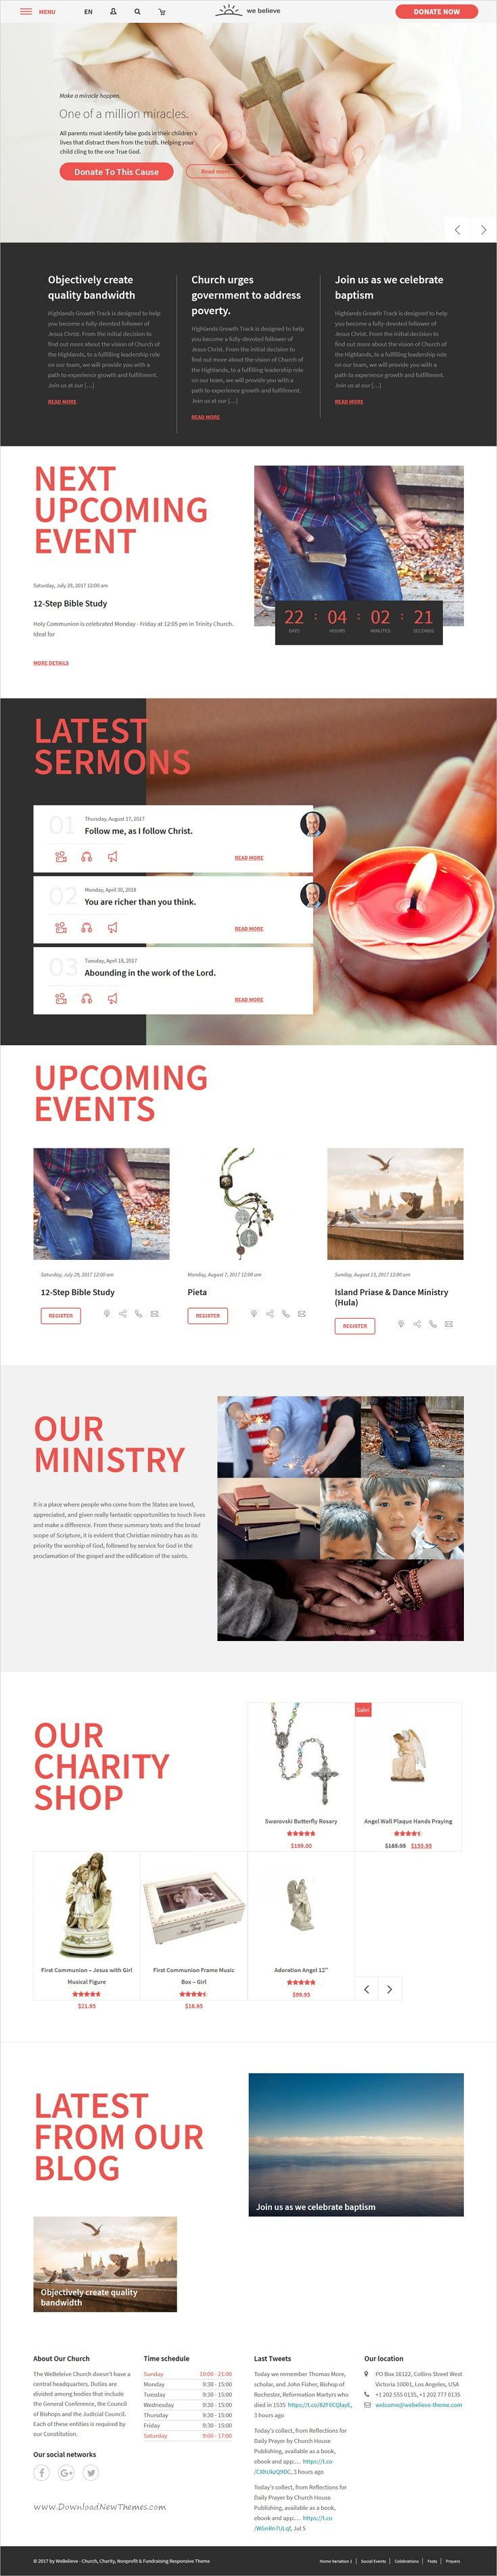 WeBelieve is clean and modern design 4in1 responsive #WordPress theme for #Church, #Charity and Fundraising and nonprofit organizations website download now > https://themeforest.net/item/webelieve-responsive-multipurpose-church-theme/19736499?ref=Datasata